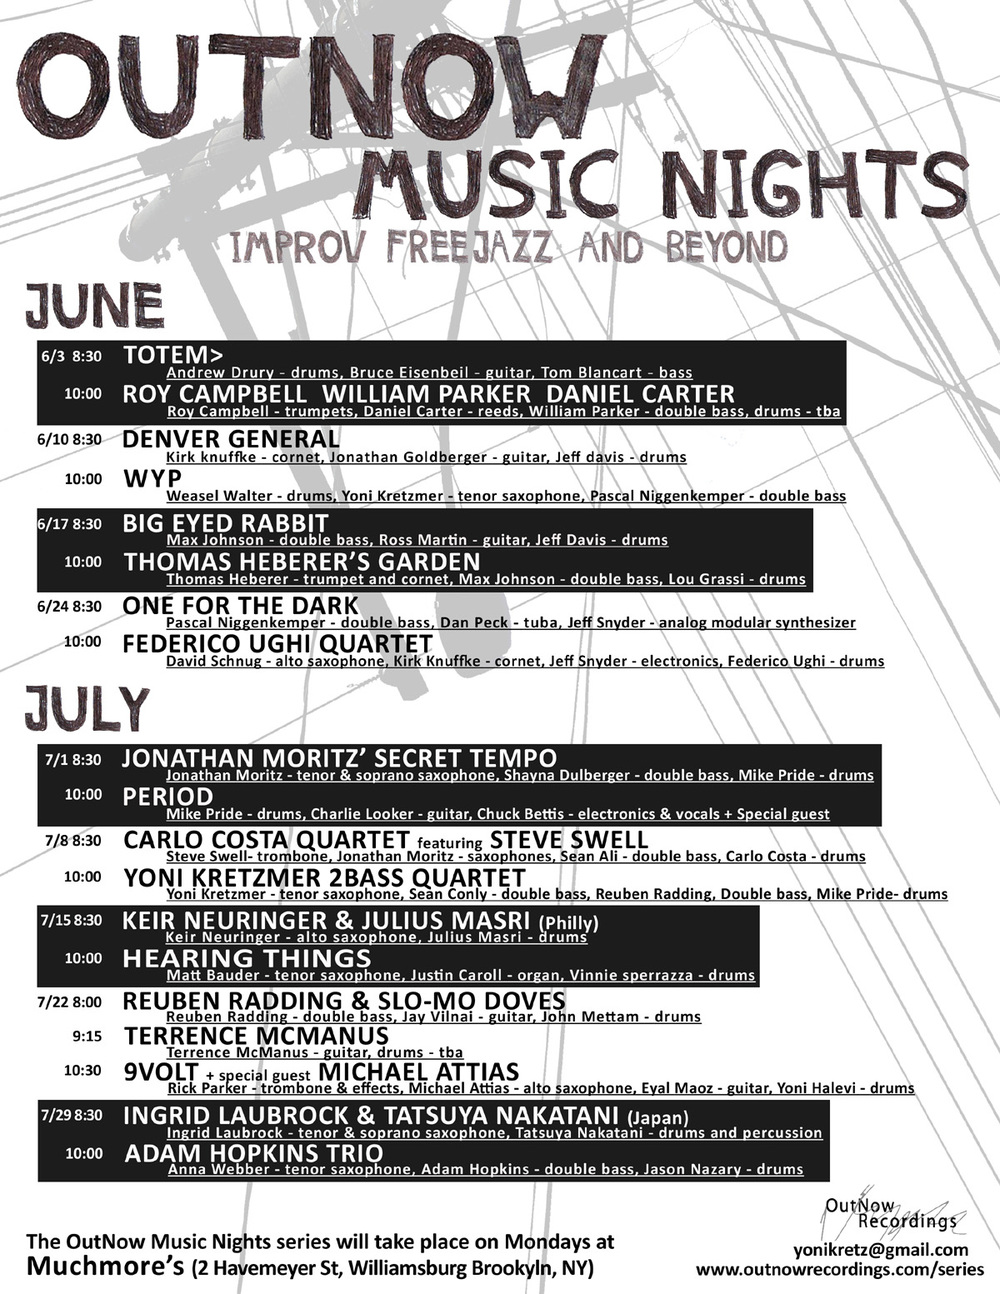 Out Night Music Nights program - June & July 2013